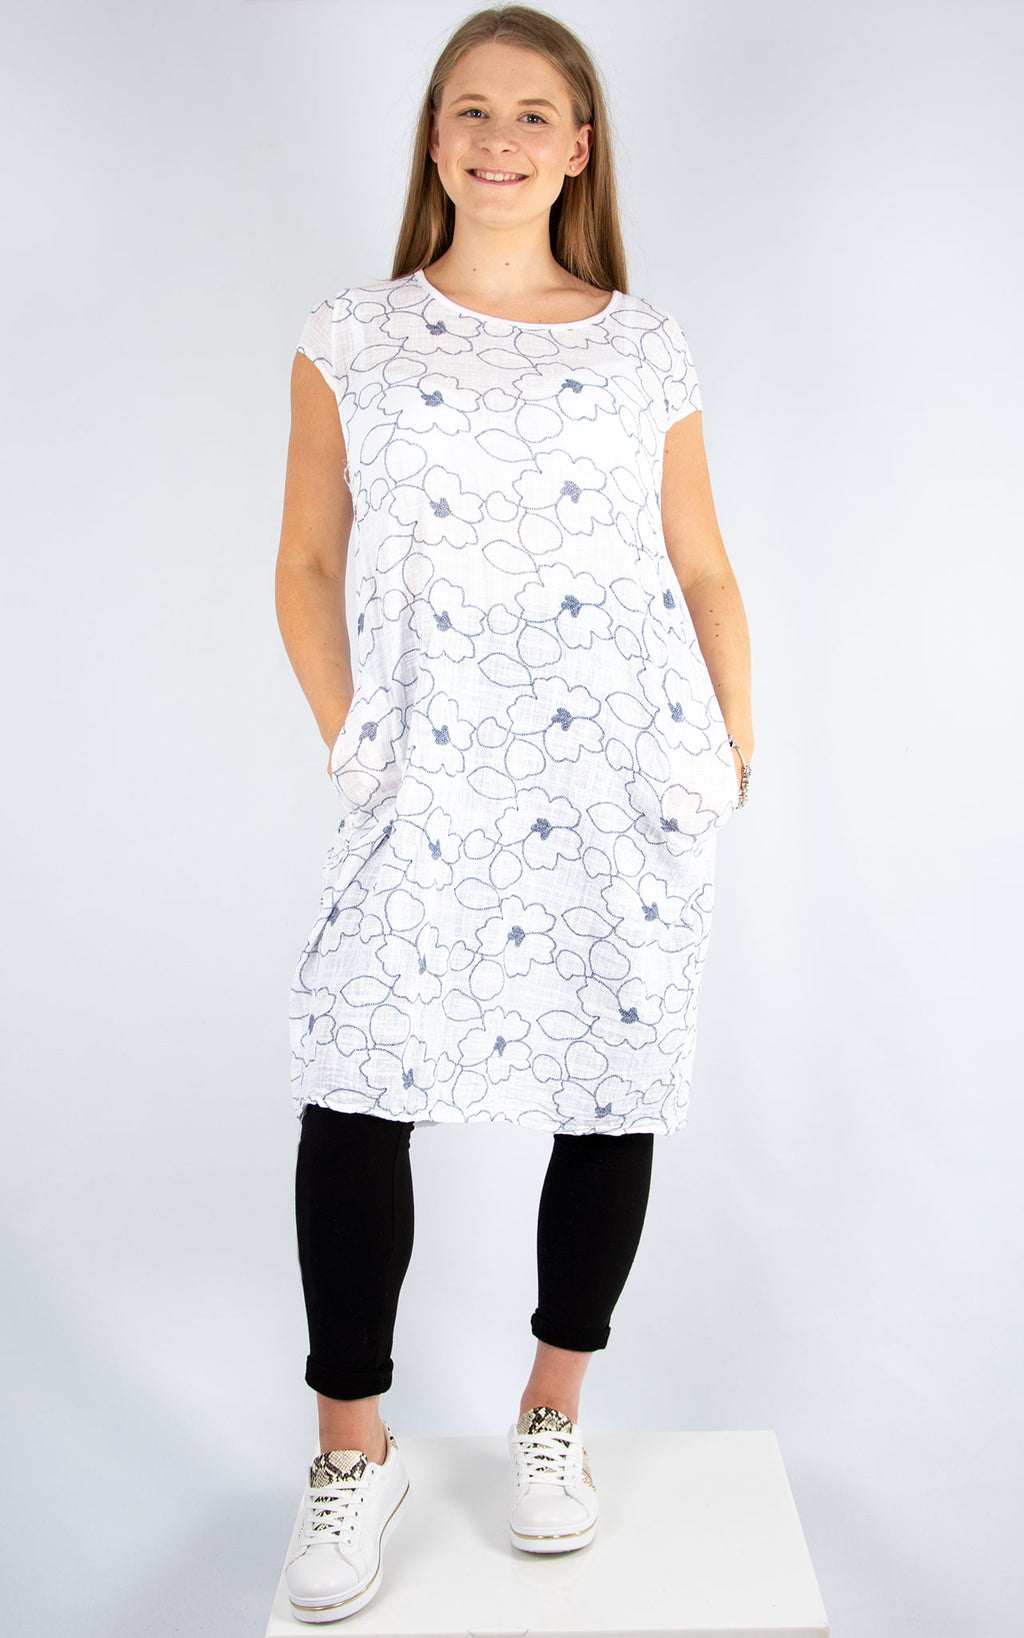 White & Navy Floral Dress | Made in Italy